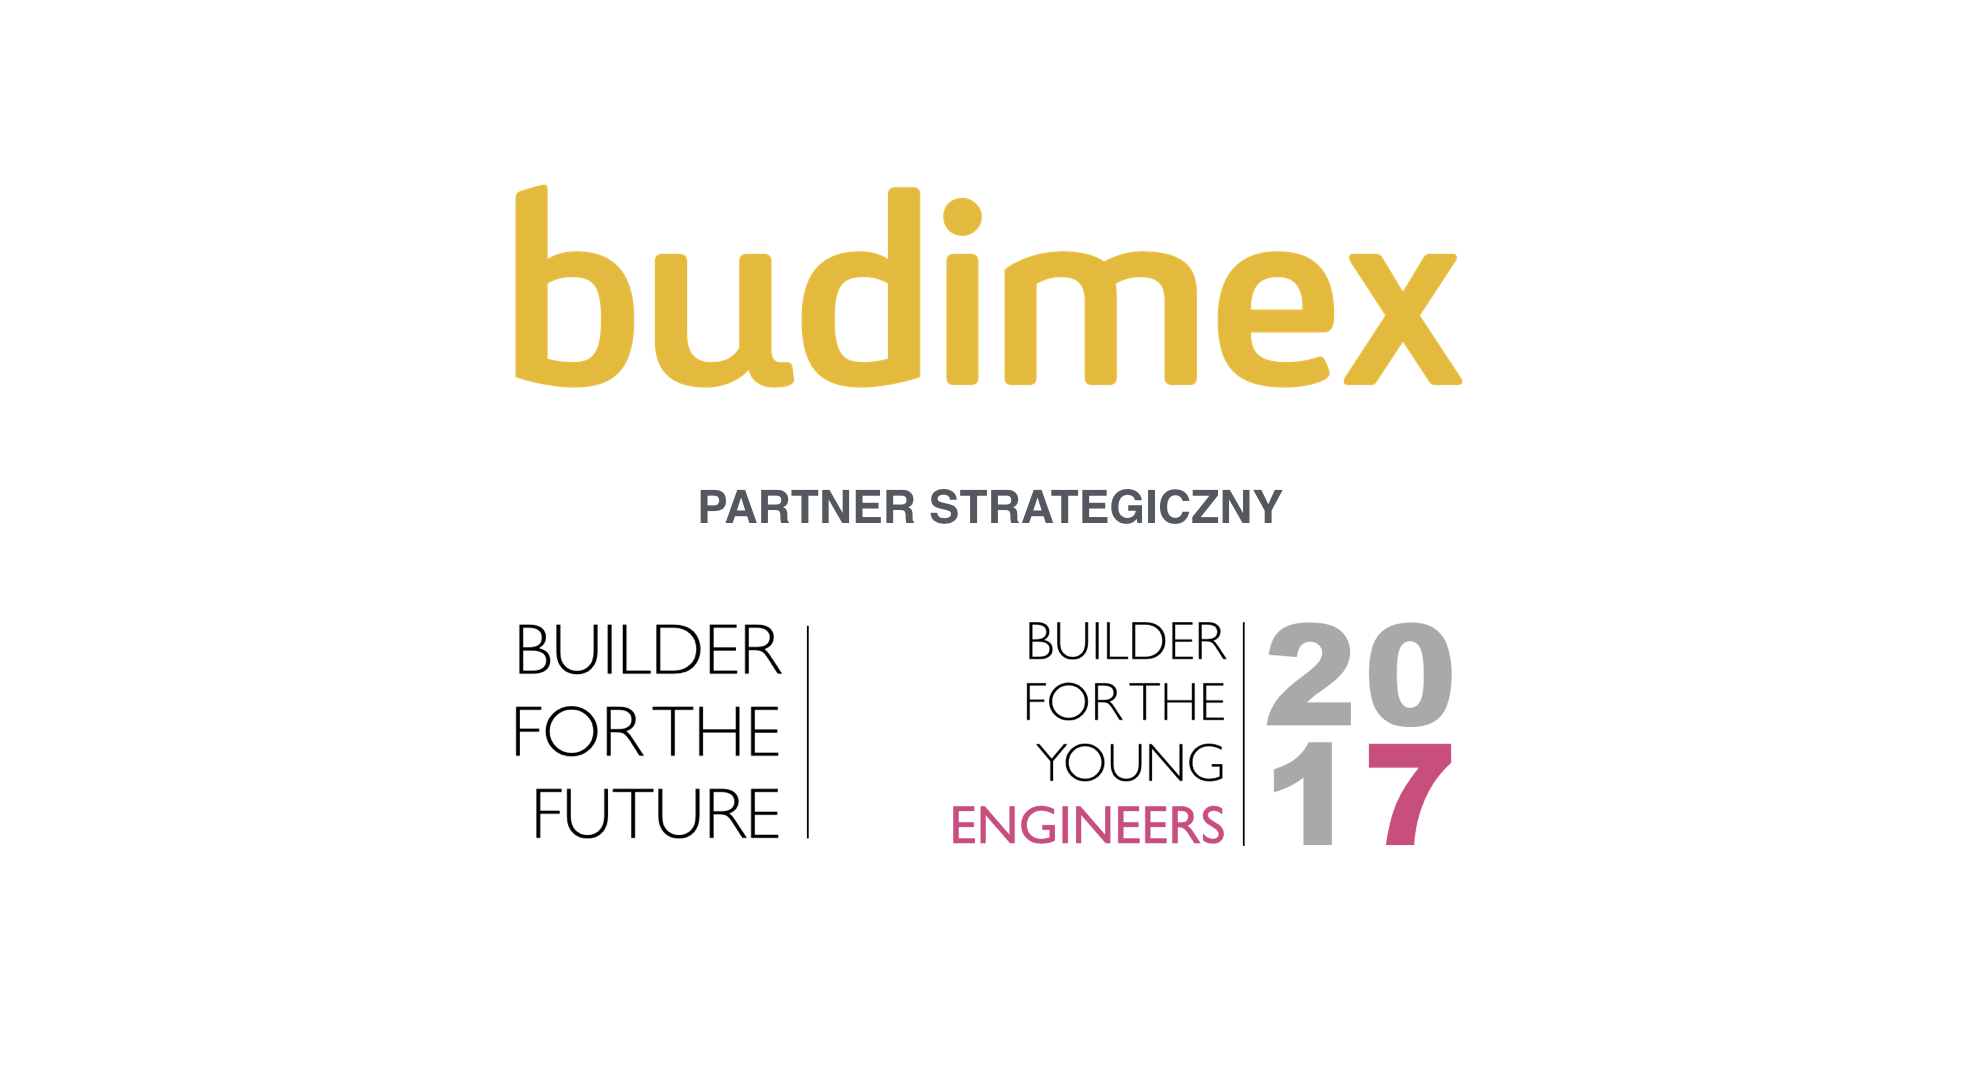 BUDIMEX FOR THE FUTURE